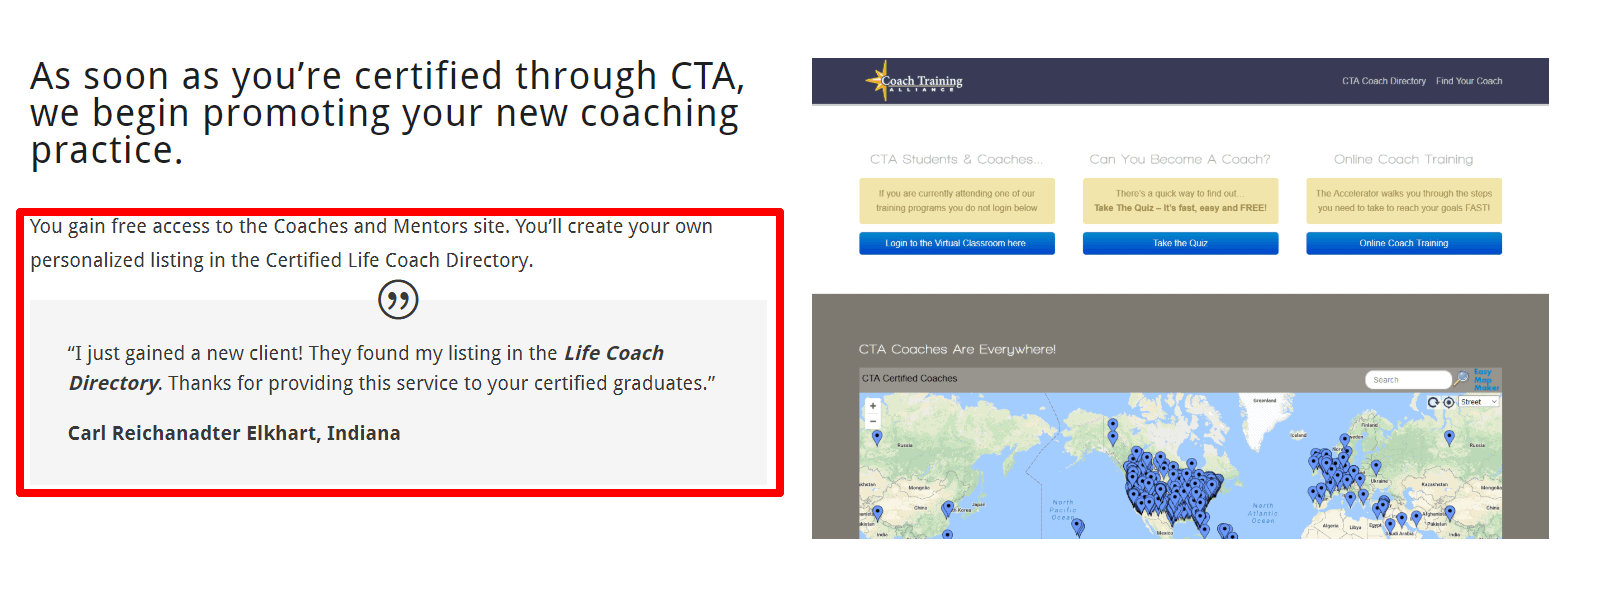 Coach Training Alliance Students Review